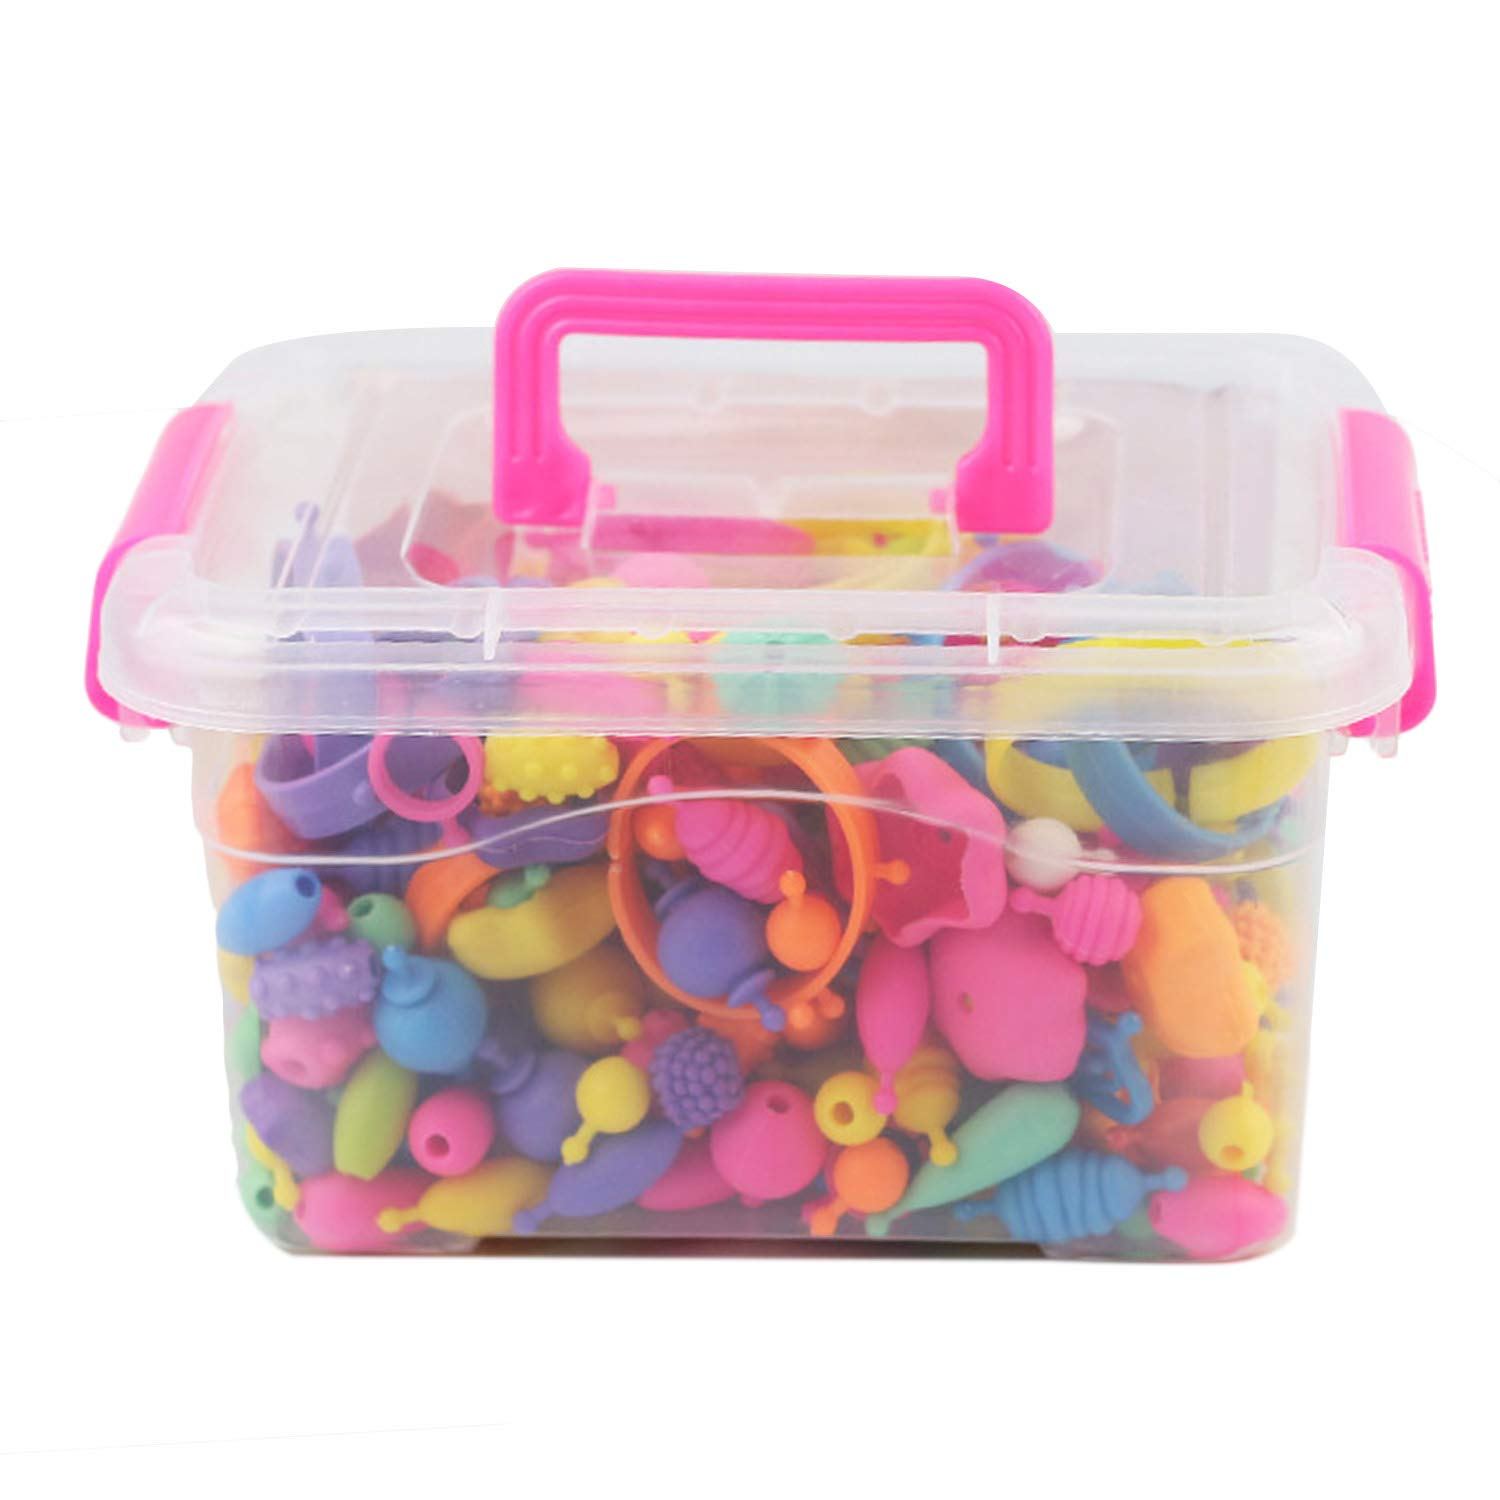 Kids Snap Beads Set Creative DIY Jewelry Making Kit for Girls Necklace and Bracelet Art Crafts Gifts Toys 500 Pcs xin-2018-02 SG/_B073TV1QC1/_US